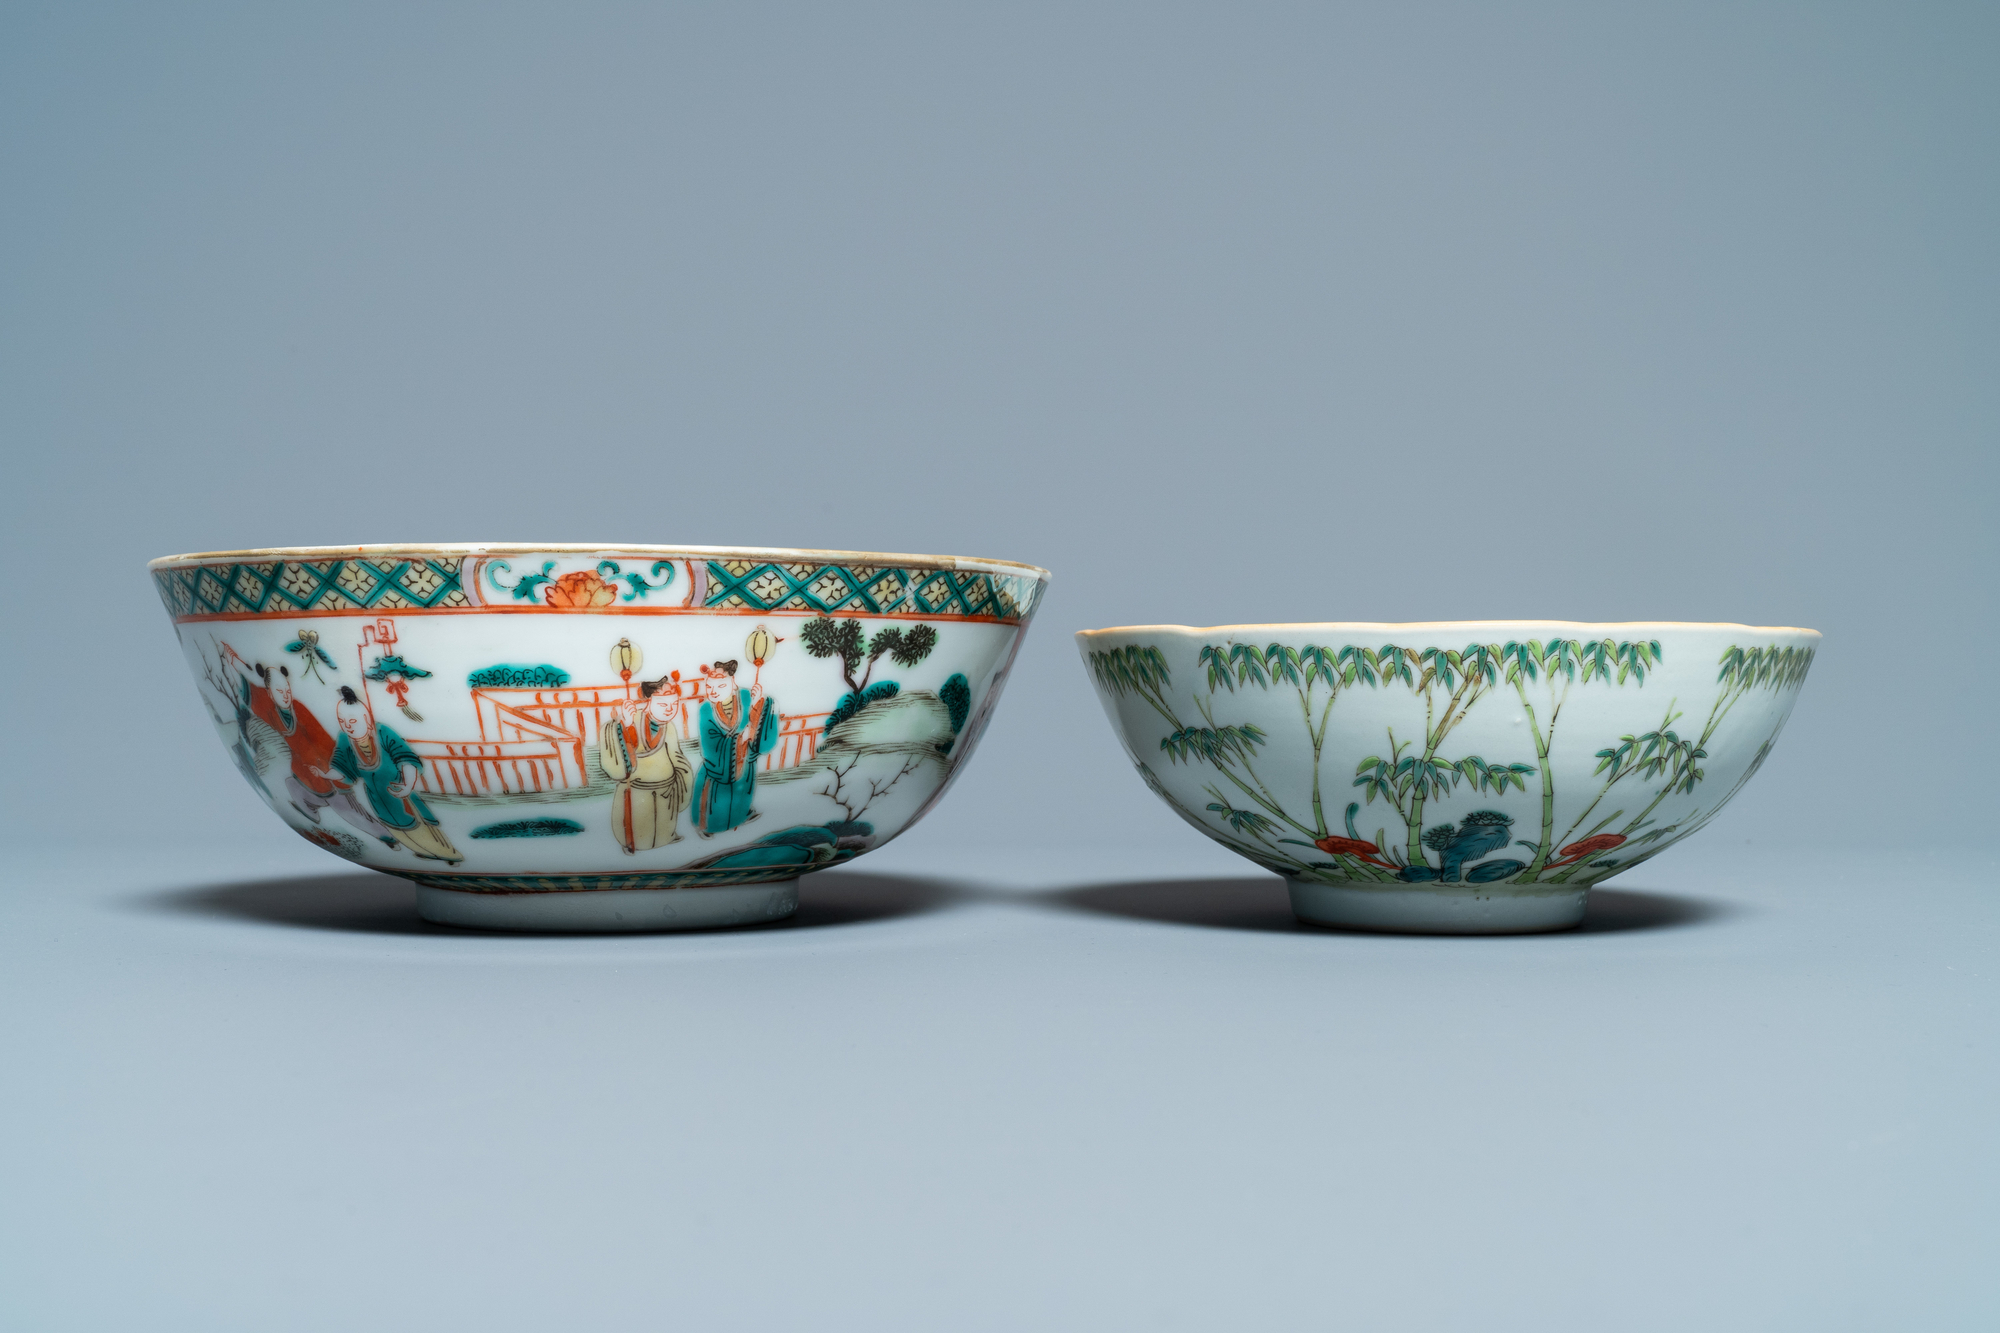 A Chinese blue and white jardiniere and two famille verte bowls, 19/20th C. - Image 8 of 13